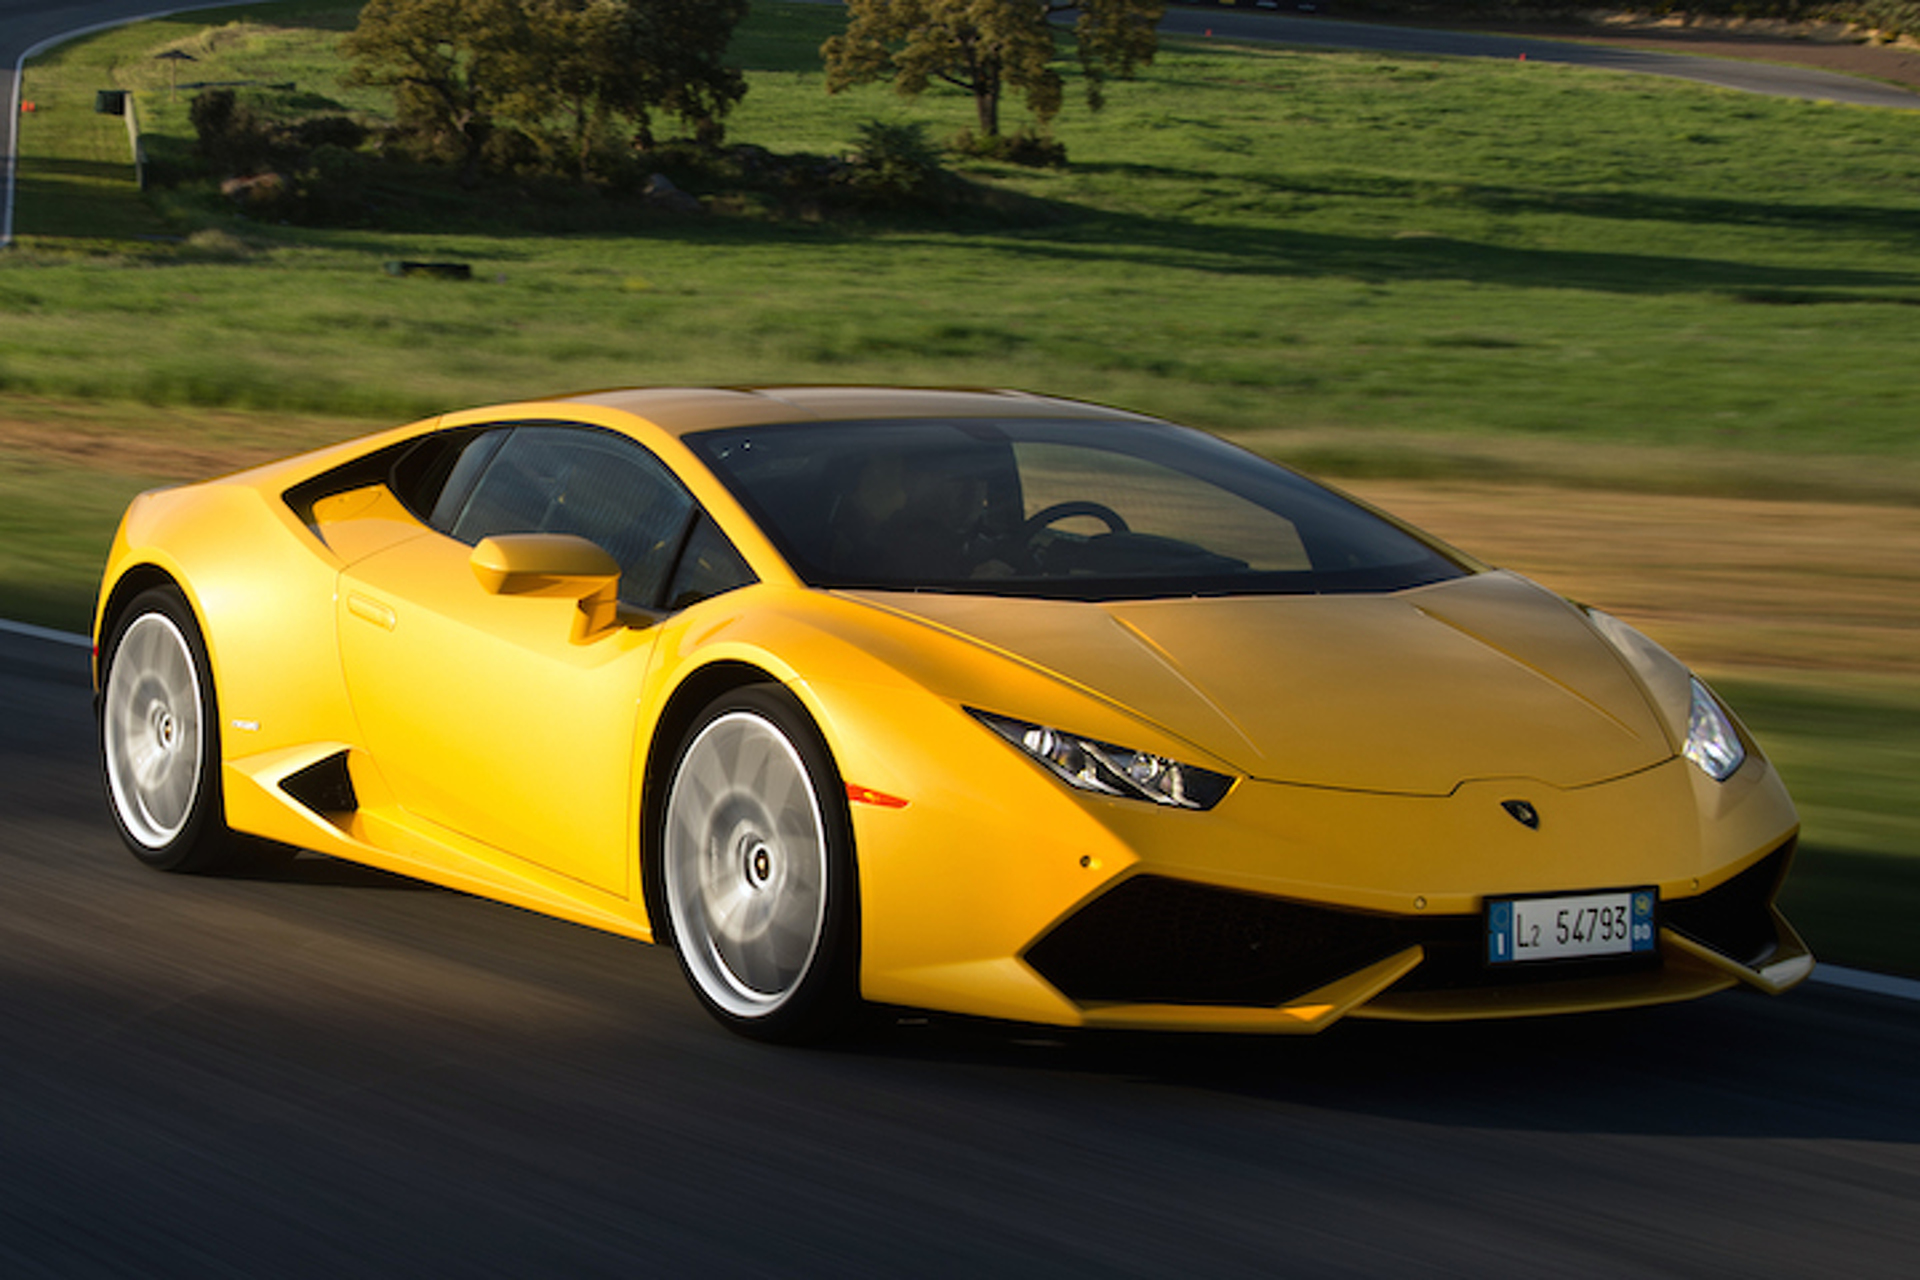 Lamborghini Huracan Might Get Rear-Wheel Drive Option